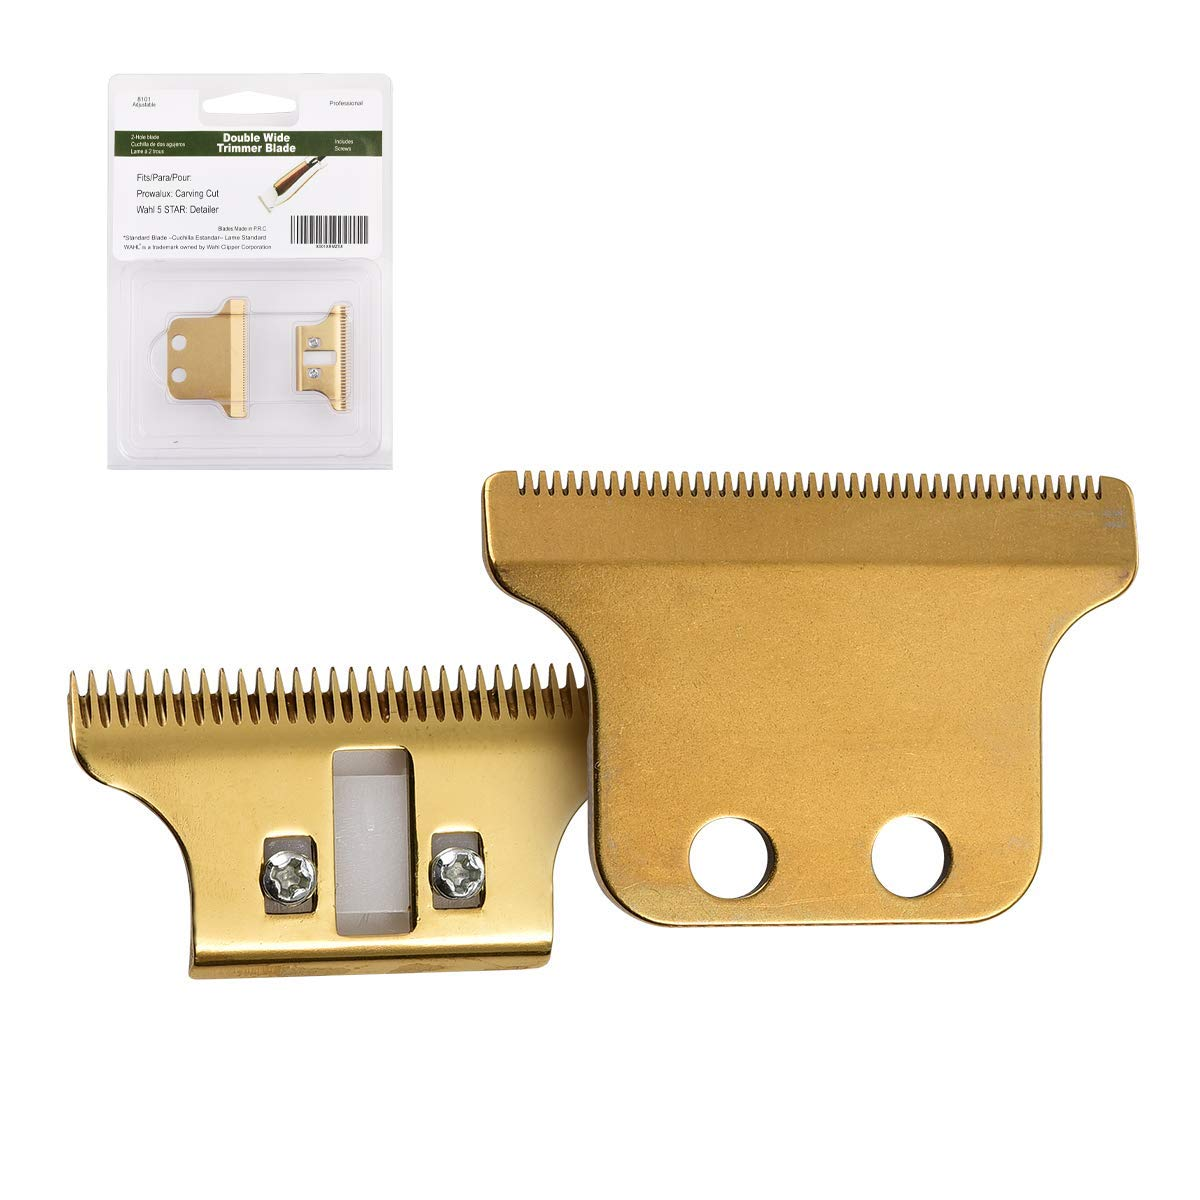 Wahl Ceramic Blade Cutter Replacement Senior Sterling Magic Clip 2-Hole For Wah